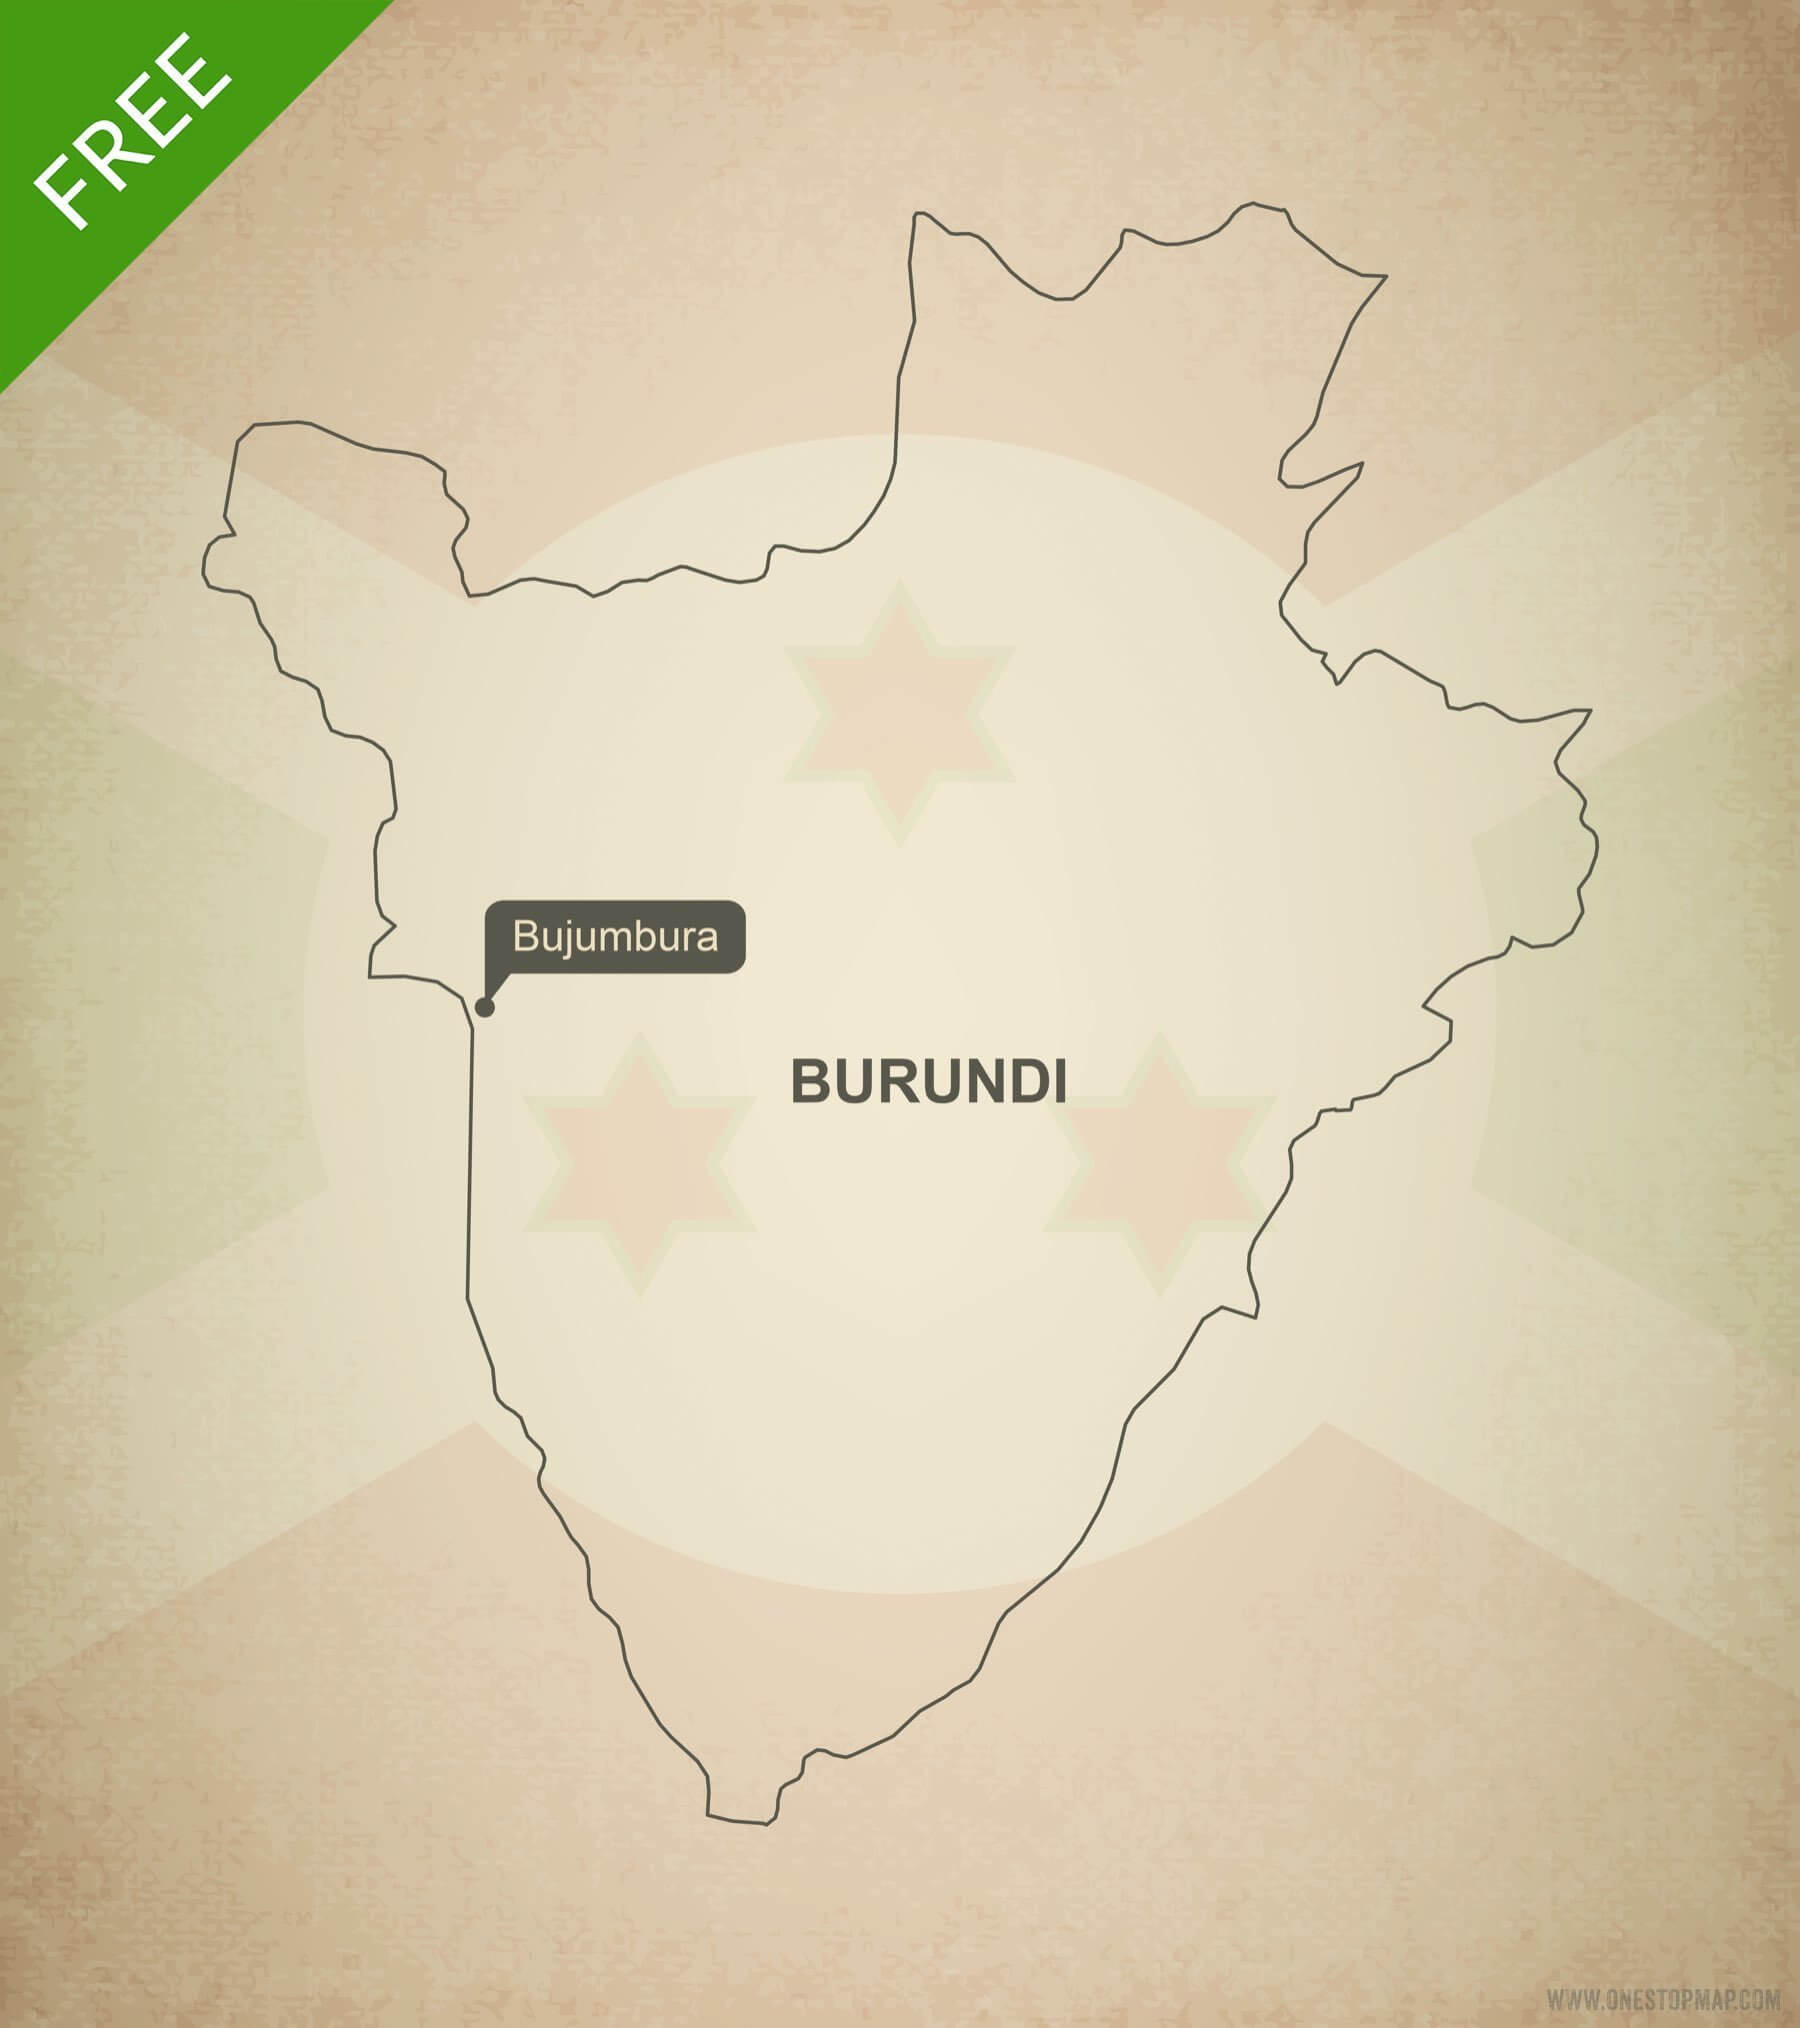 Free vector map of Burundi outline